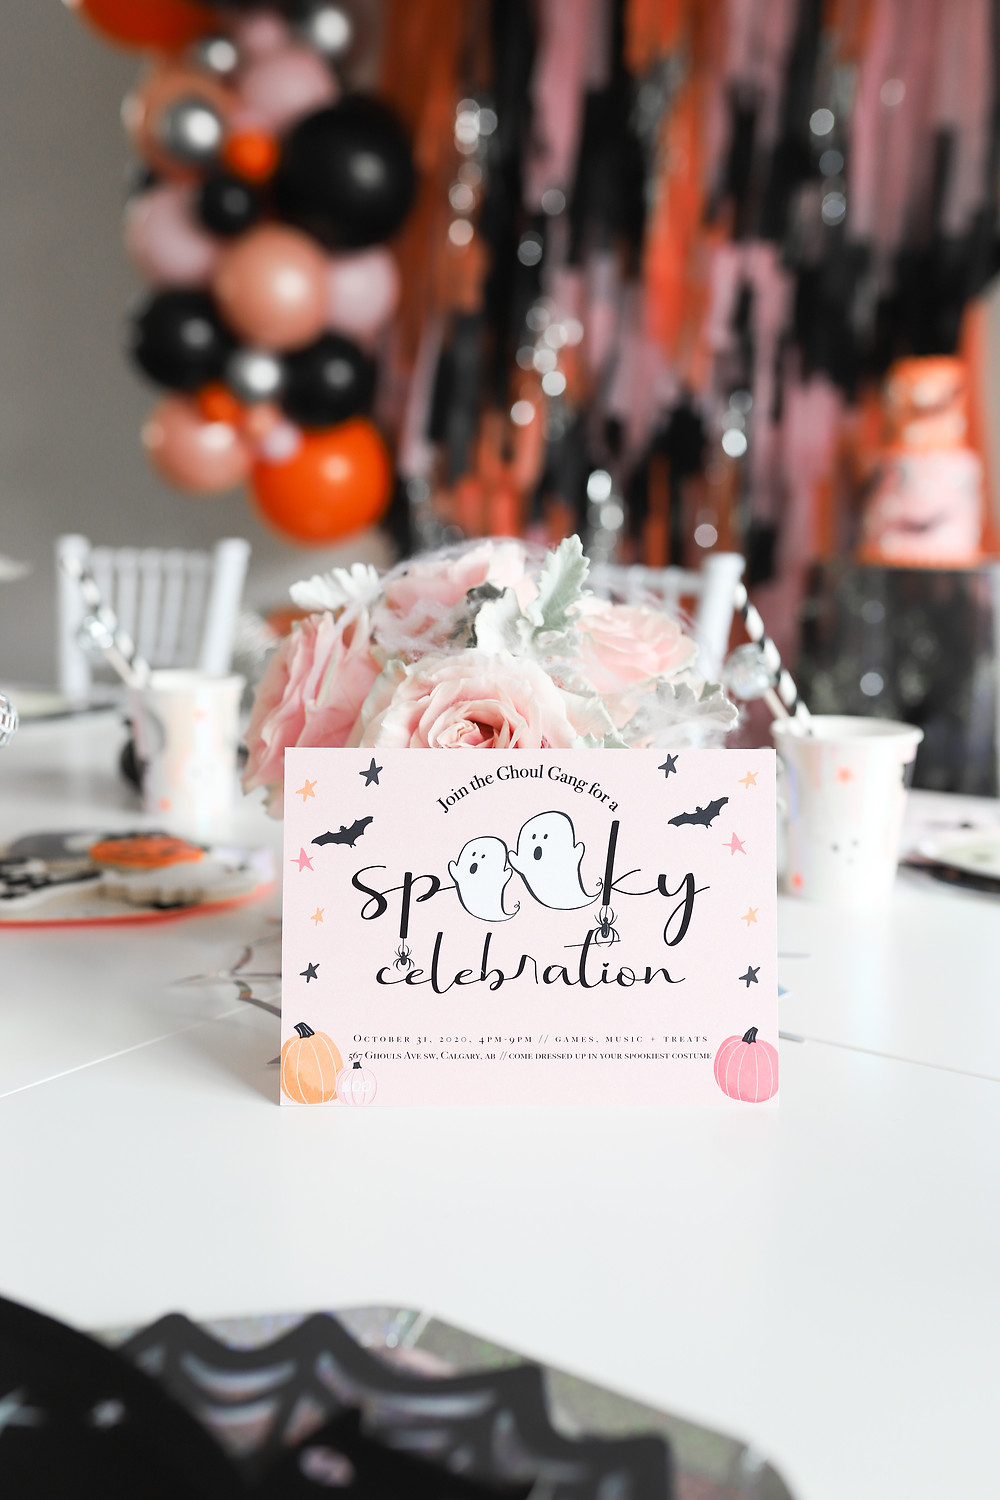 Children's spooky Halloween decor with orange and black party decorations with pink roses and invitations on a table.